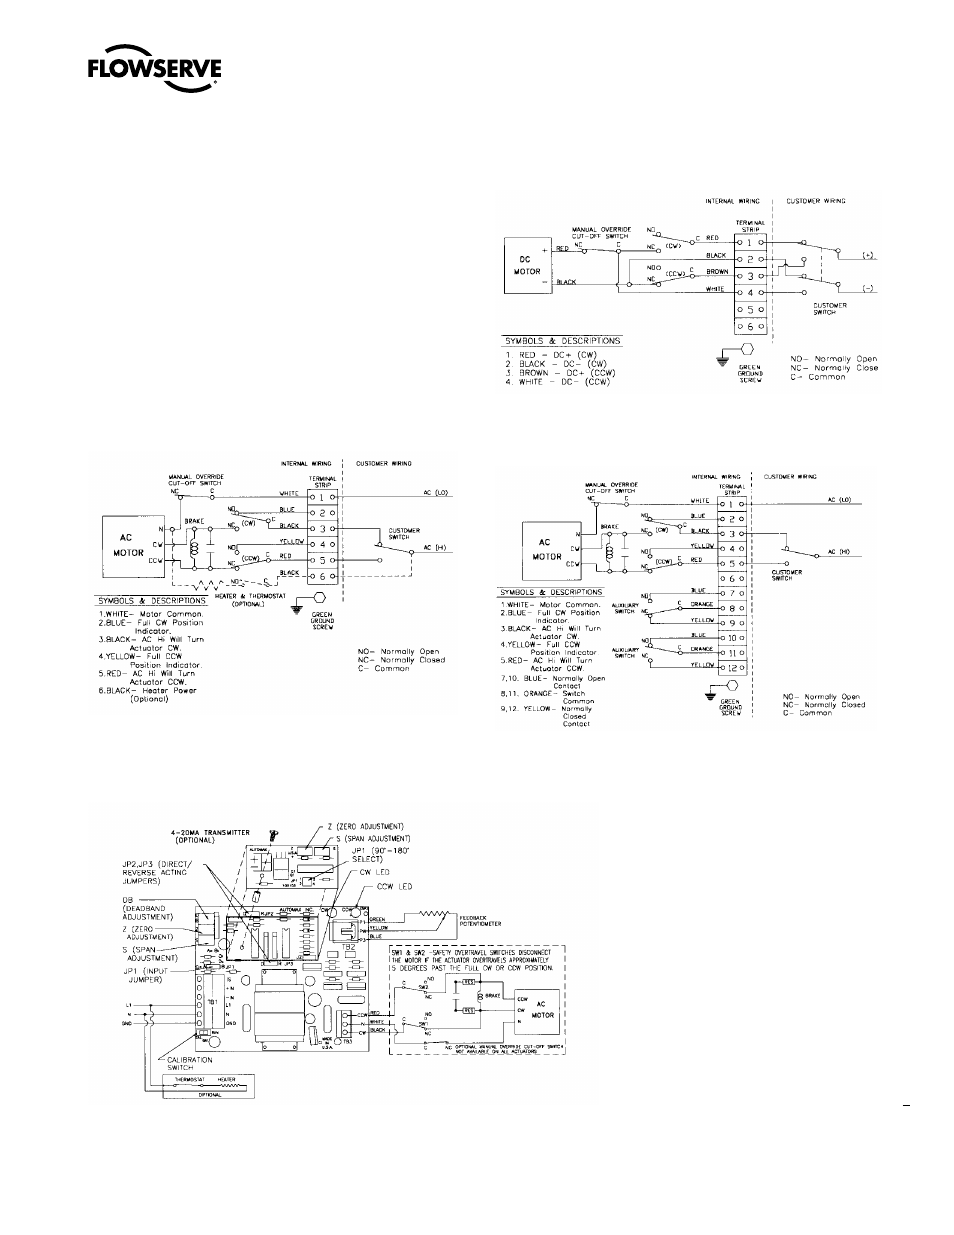 Flowserve Wiring Diagram Detailed Schematics Limitorque 1473 Diagrams Ce Series Automax Centura User Manual Furnace